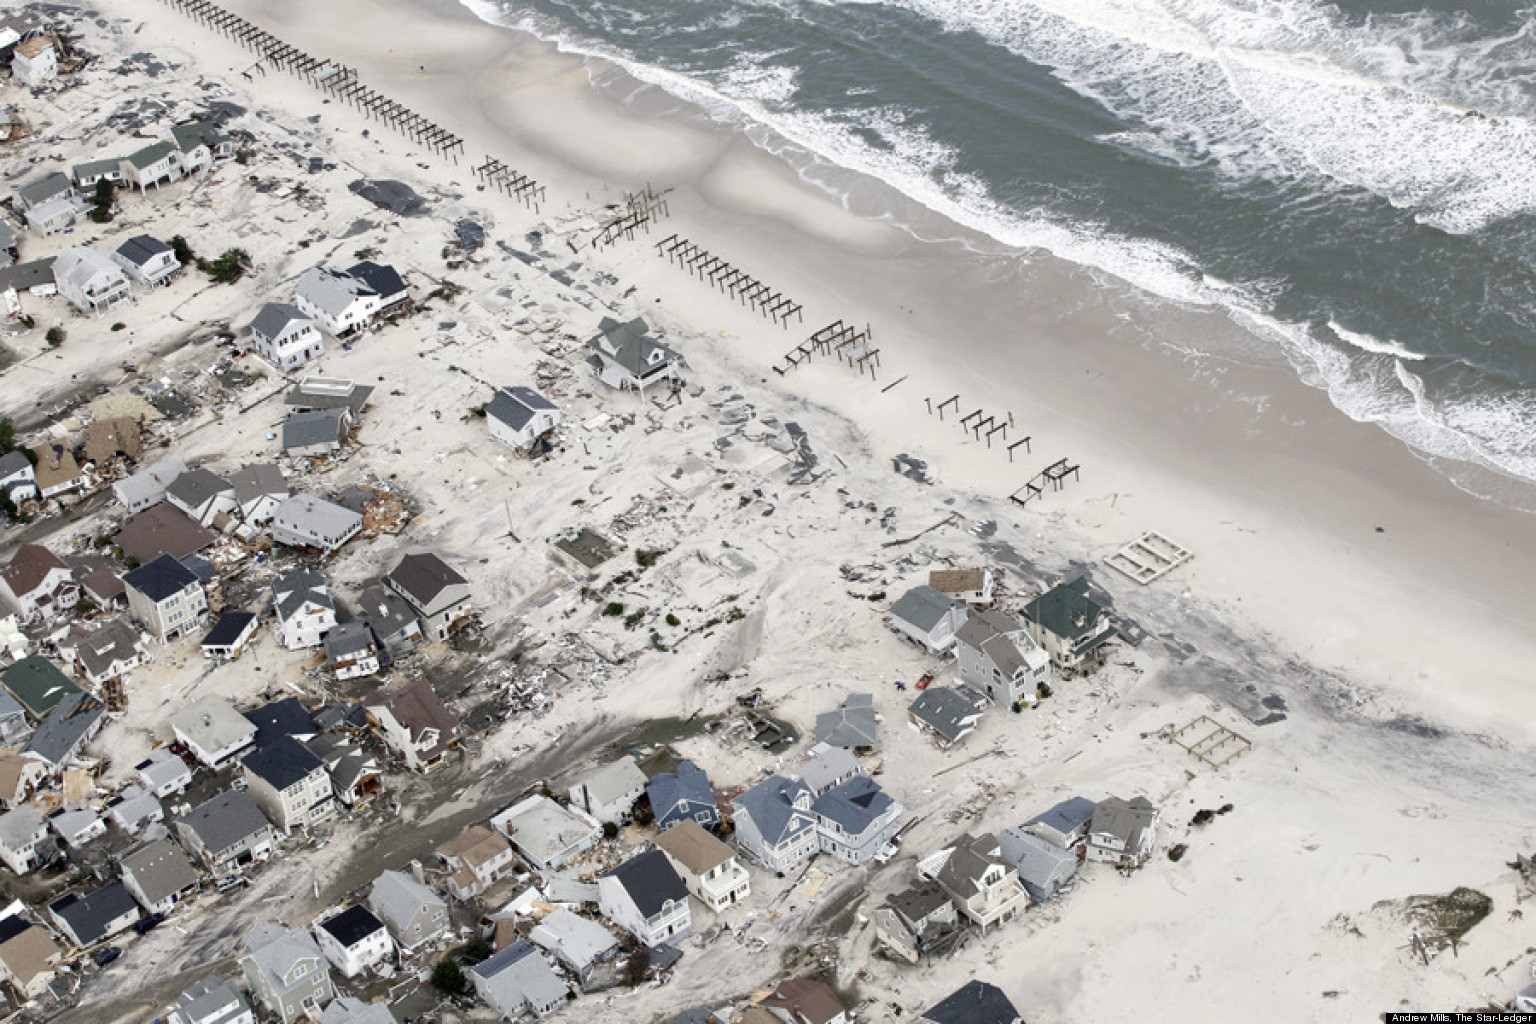 hurricane sandy essay Hurricane sandy was a tropical cyclone that devastated portions of the caribbean, mid-atlantic and northeastern united states in late october 2012 the eighteenth named storm and tenth hurricane of the 2012 atlantic hurricane season, sandy was the largest atlantic hurricane on record, as measured by.